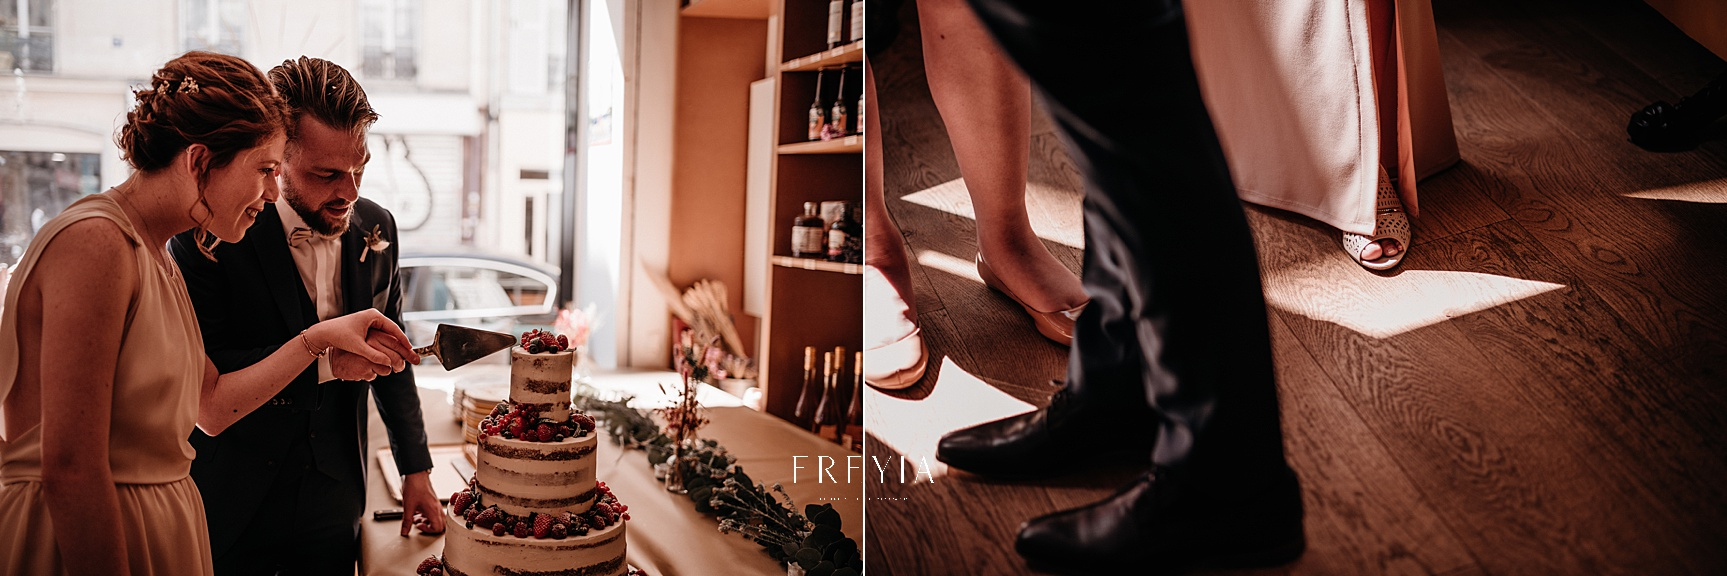 P + F |  mariage reportage alternatif moody intime vintage naturel boho boheme |  PHOTOGRAPHE mariage PARIS france destination  | FREYIA photography_-195.jpg